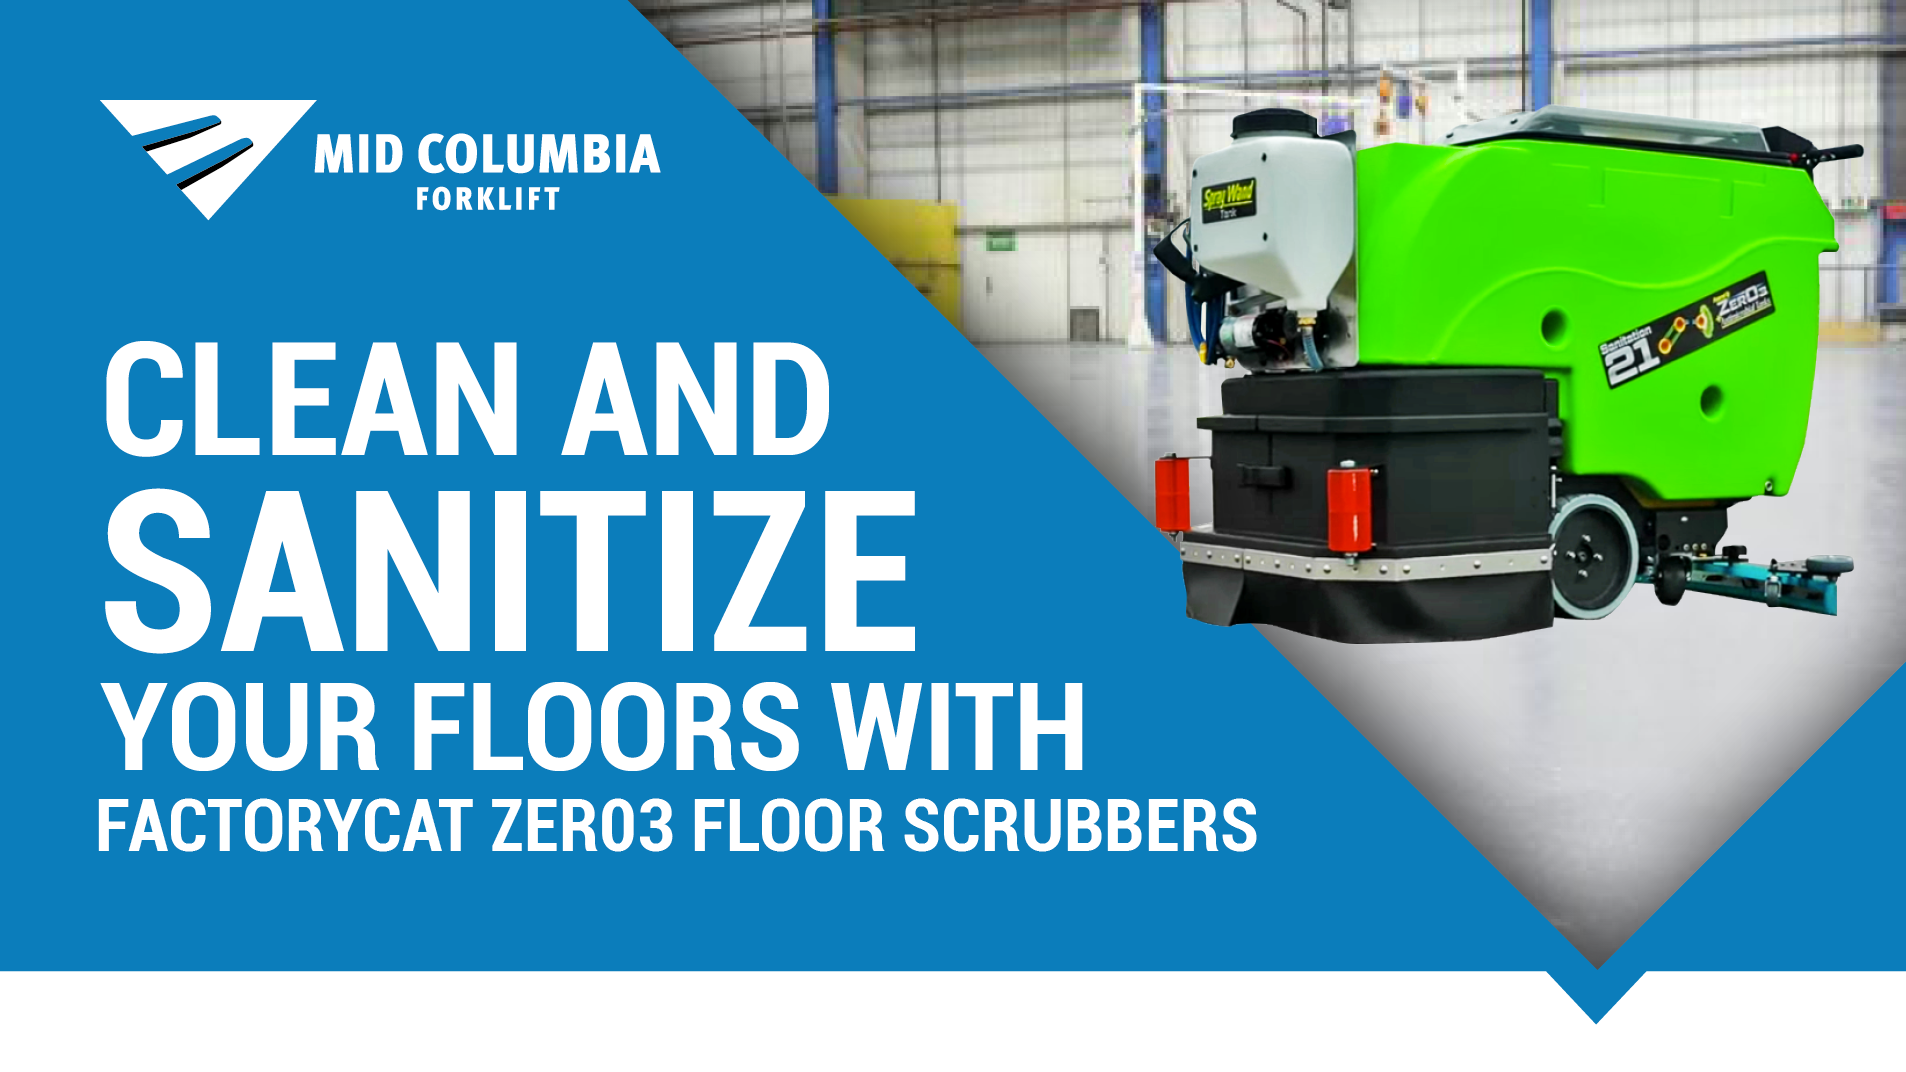 Blog Image - Clean and Sanitize Your Floors with FactoryCat Zer03 Floor Scrubbers